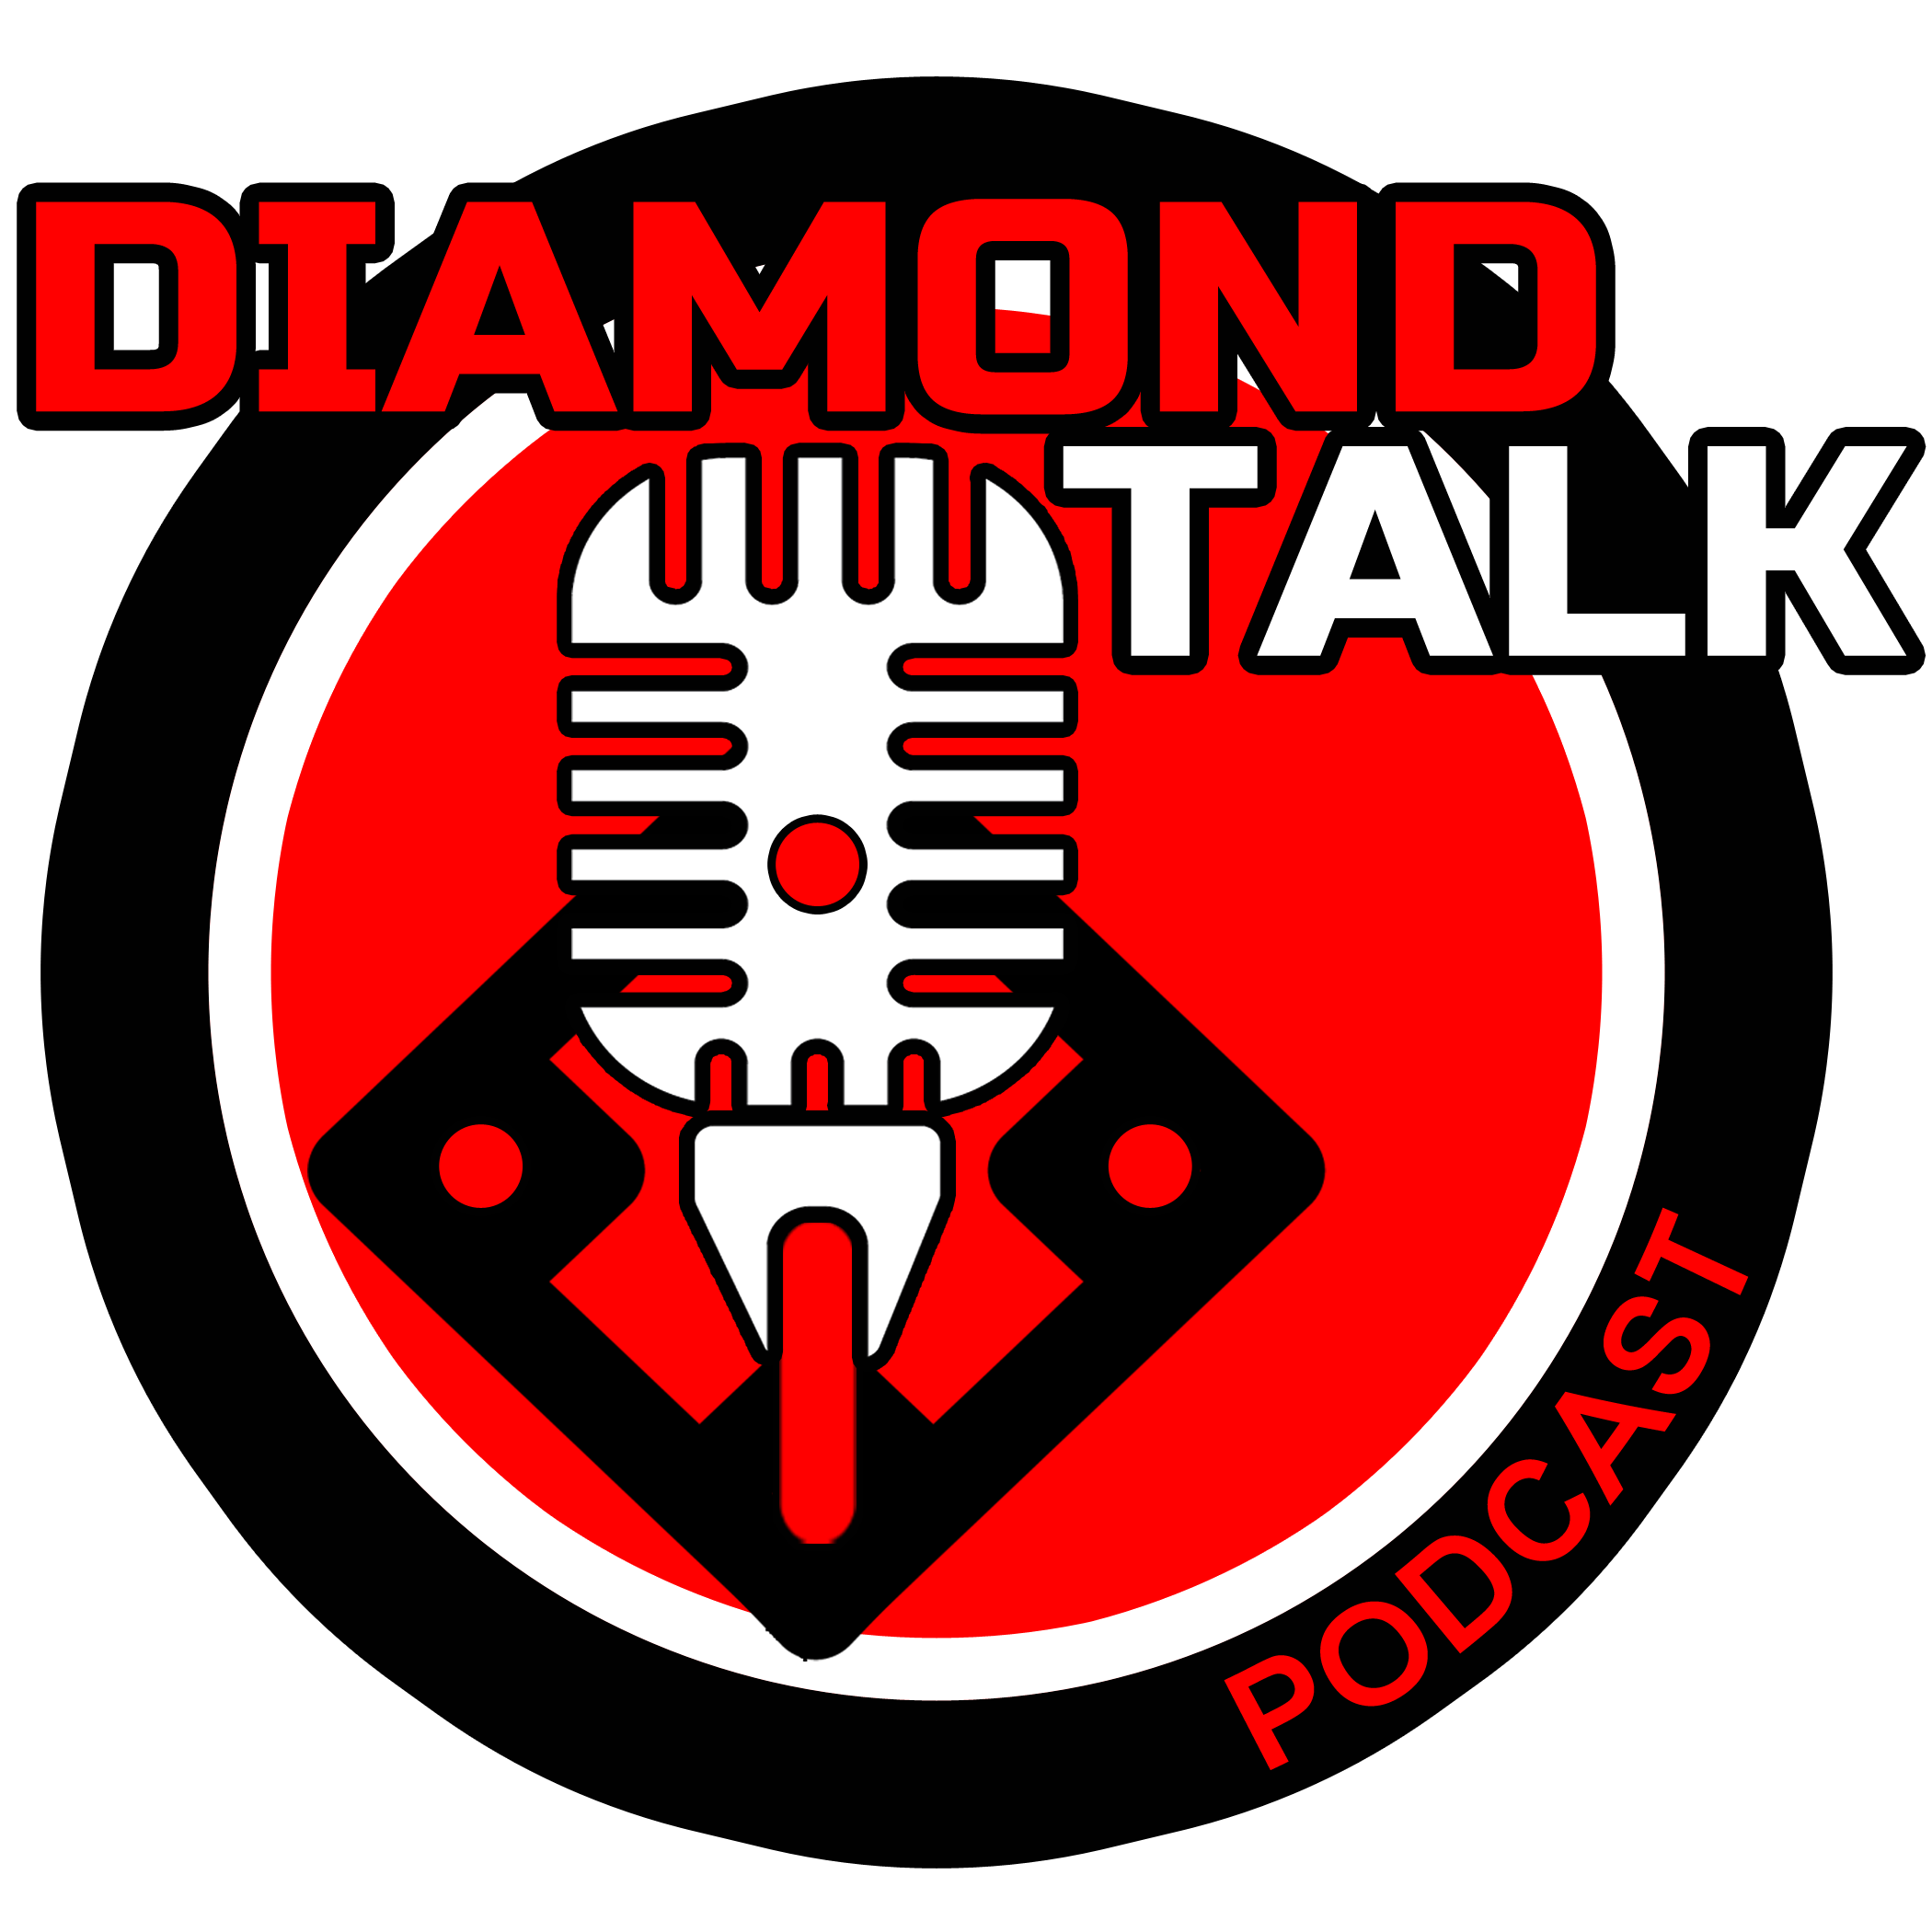 Diamond Talk Baseball & Softball Podcast Episode 6 | Restarting In NJ, 1st Practices After Quarantine, Coaching Creatively, Perspective On Scherzer & Price